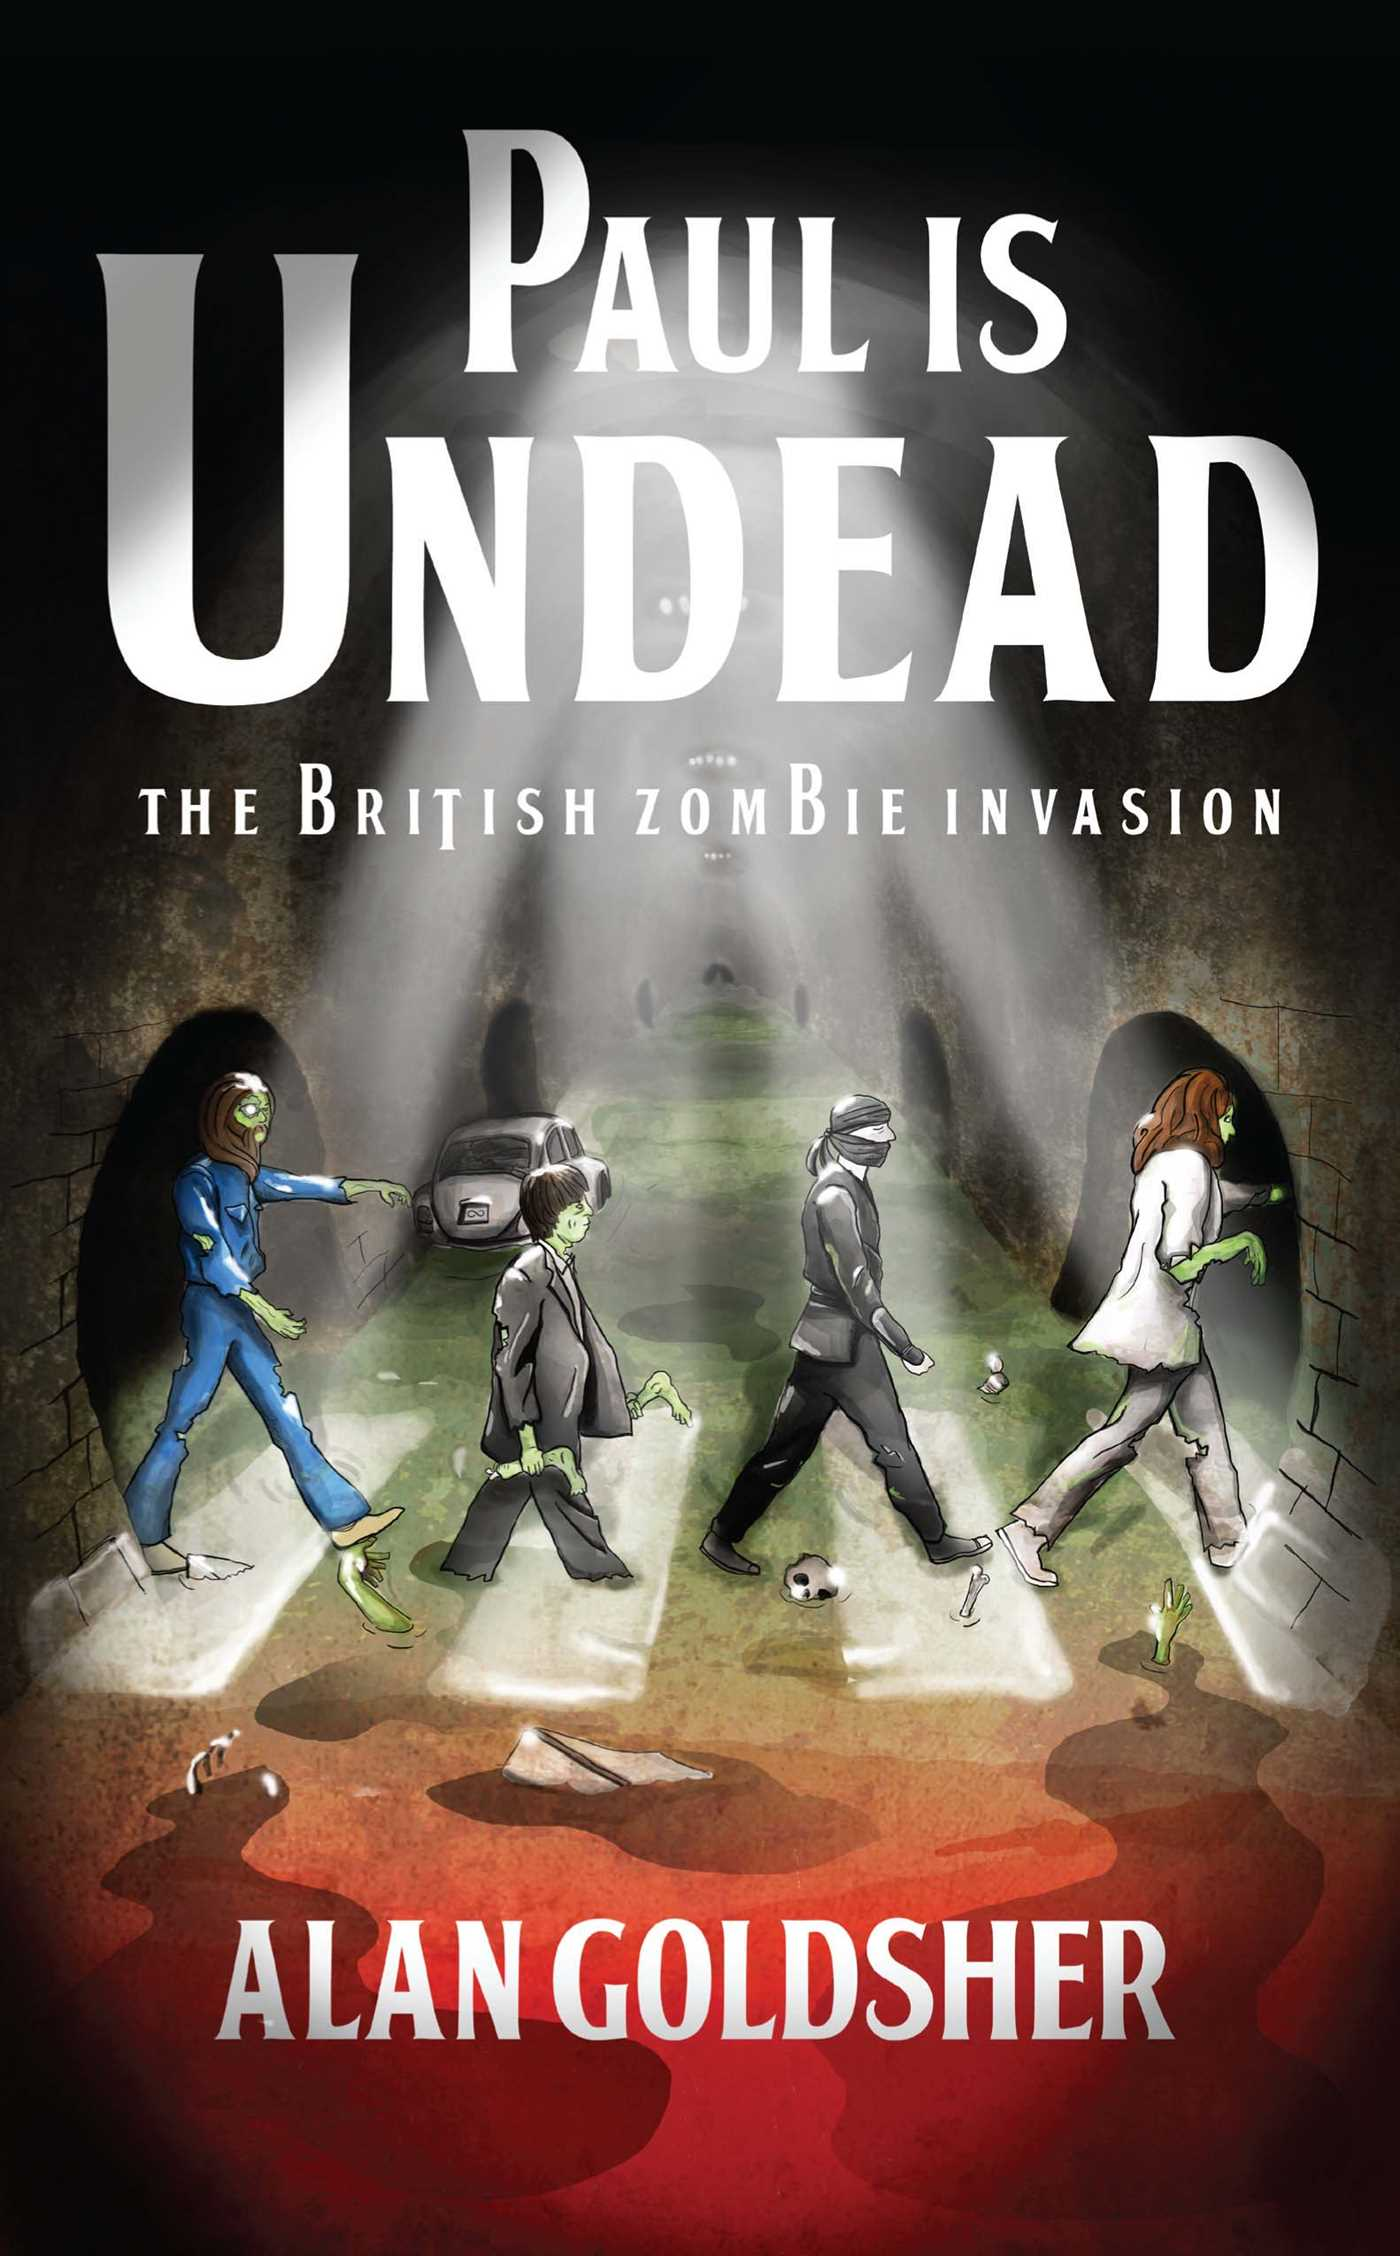 Paul is undead 9781439177921 hr